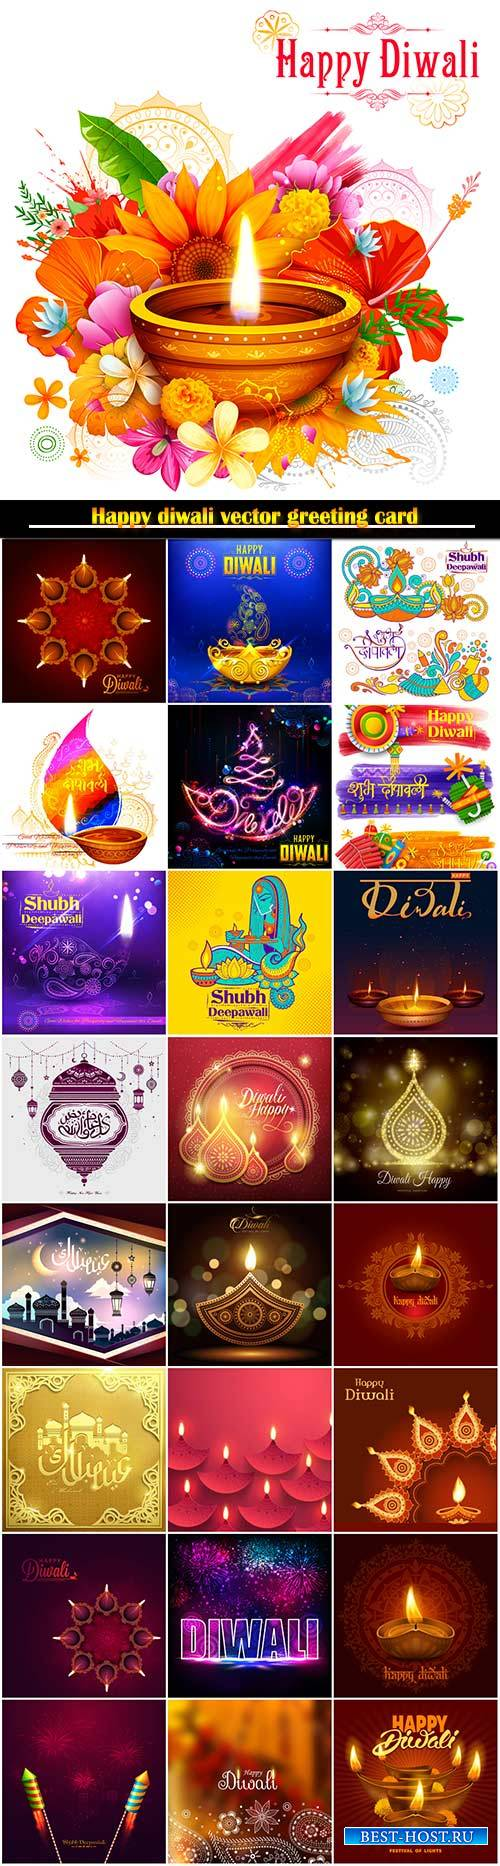 Happy diwali vector greeting card # 4